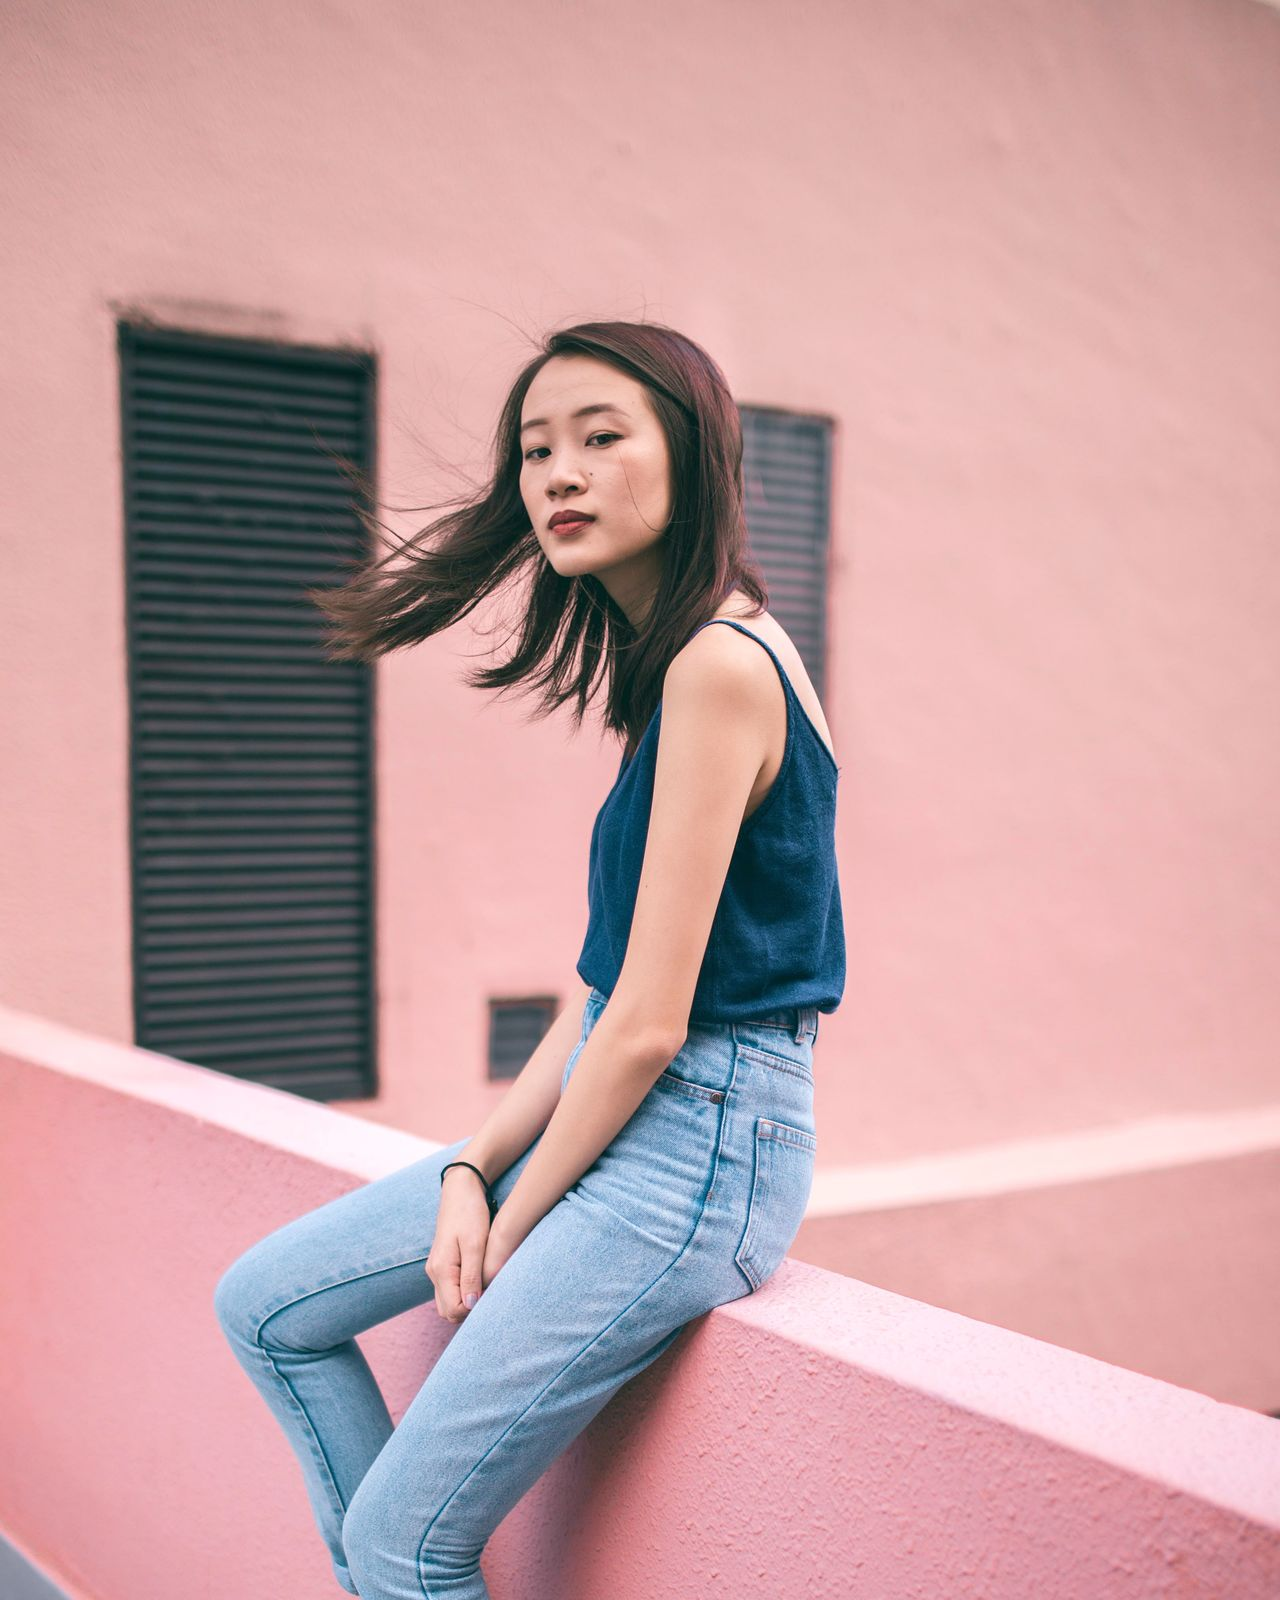 Beautiful young woman against wall